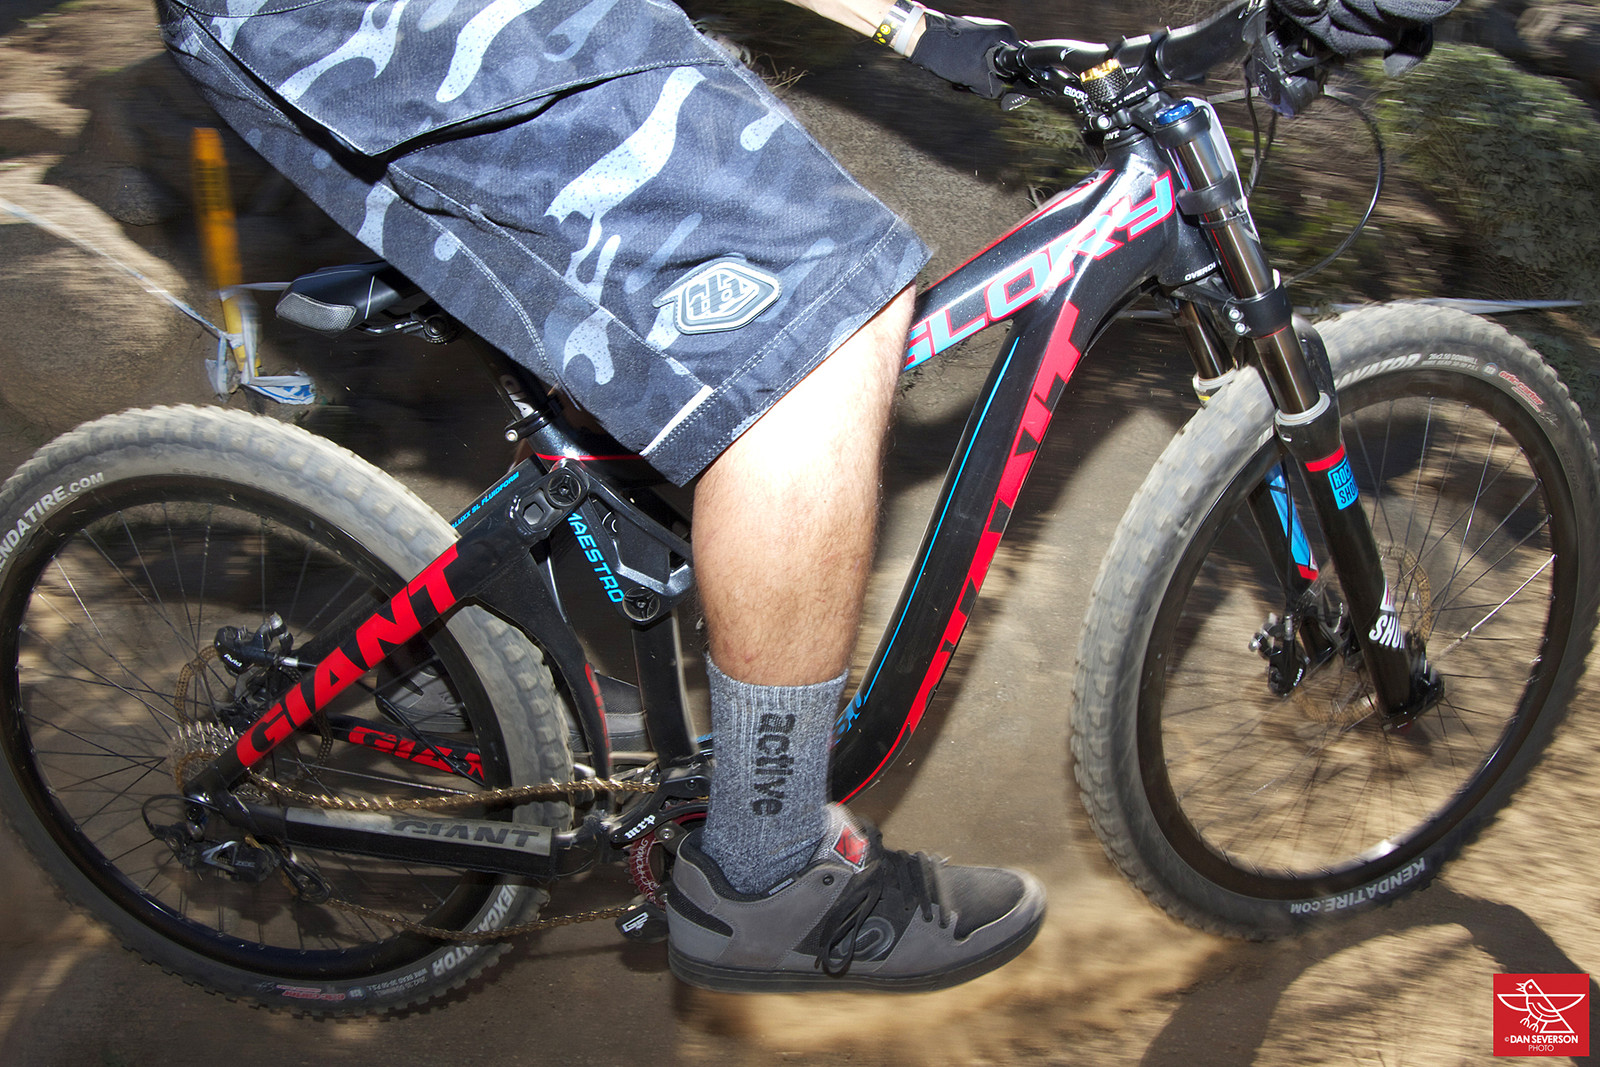 G-Out Project: Fontana 2015 - Giant Glory DH - danseverson photo - Mountain Biking Pictures - Vital MTB